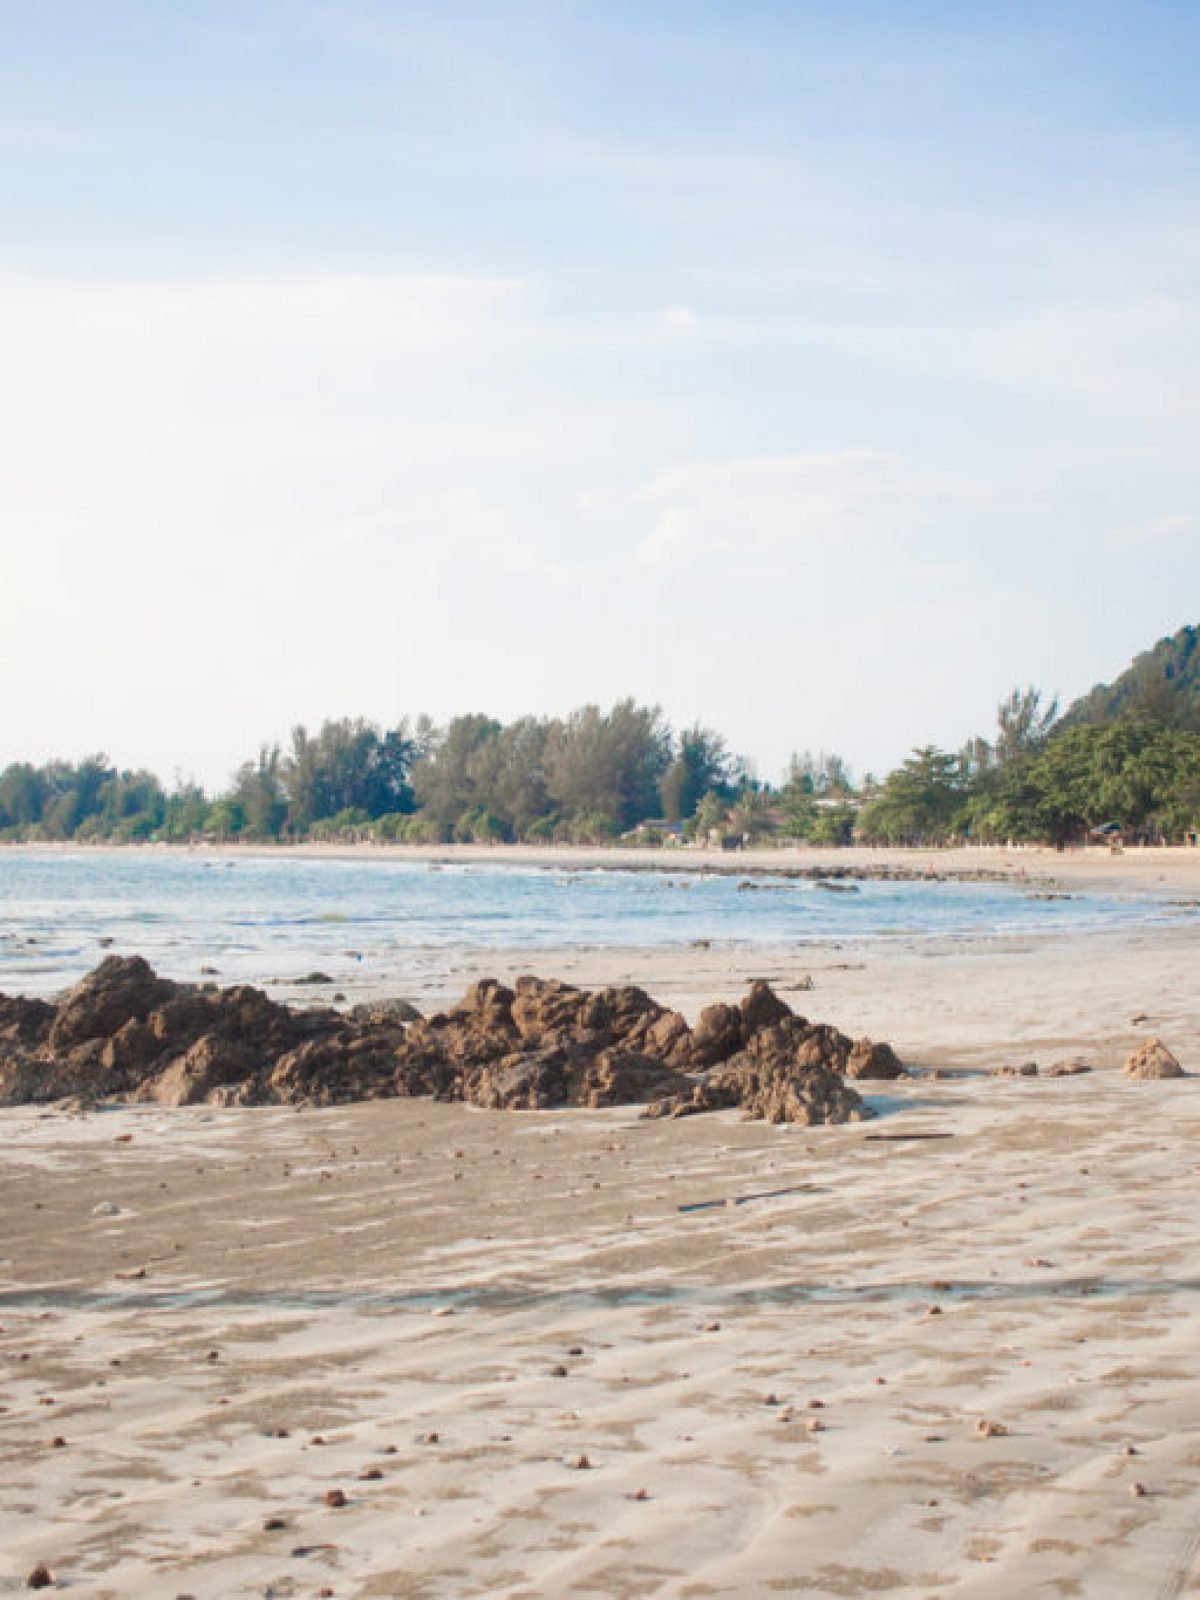 koh lanta thailand, time for lime, cooking school in koh lanta, cooking school in thailand, thailand, thailand islands, thai islands, beach in thailand